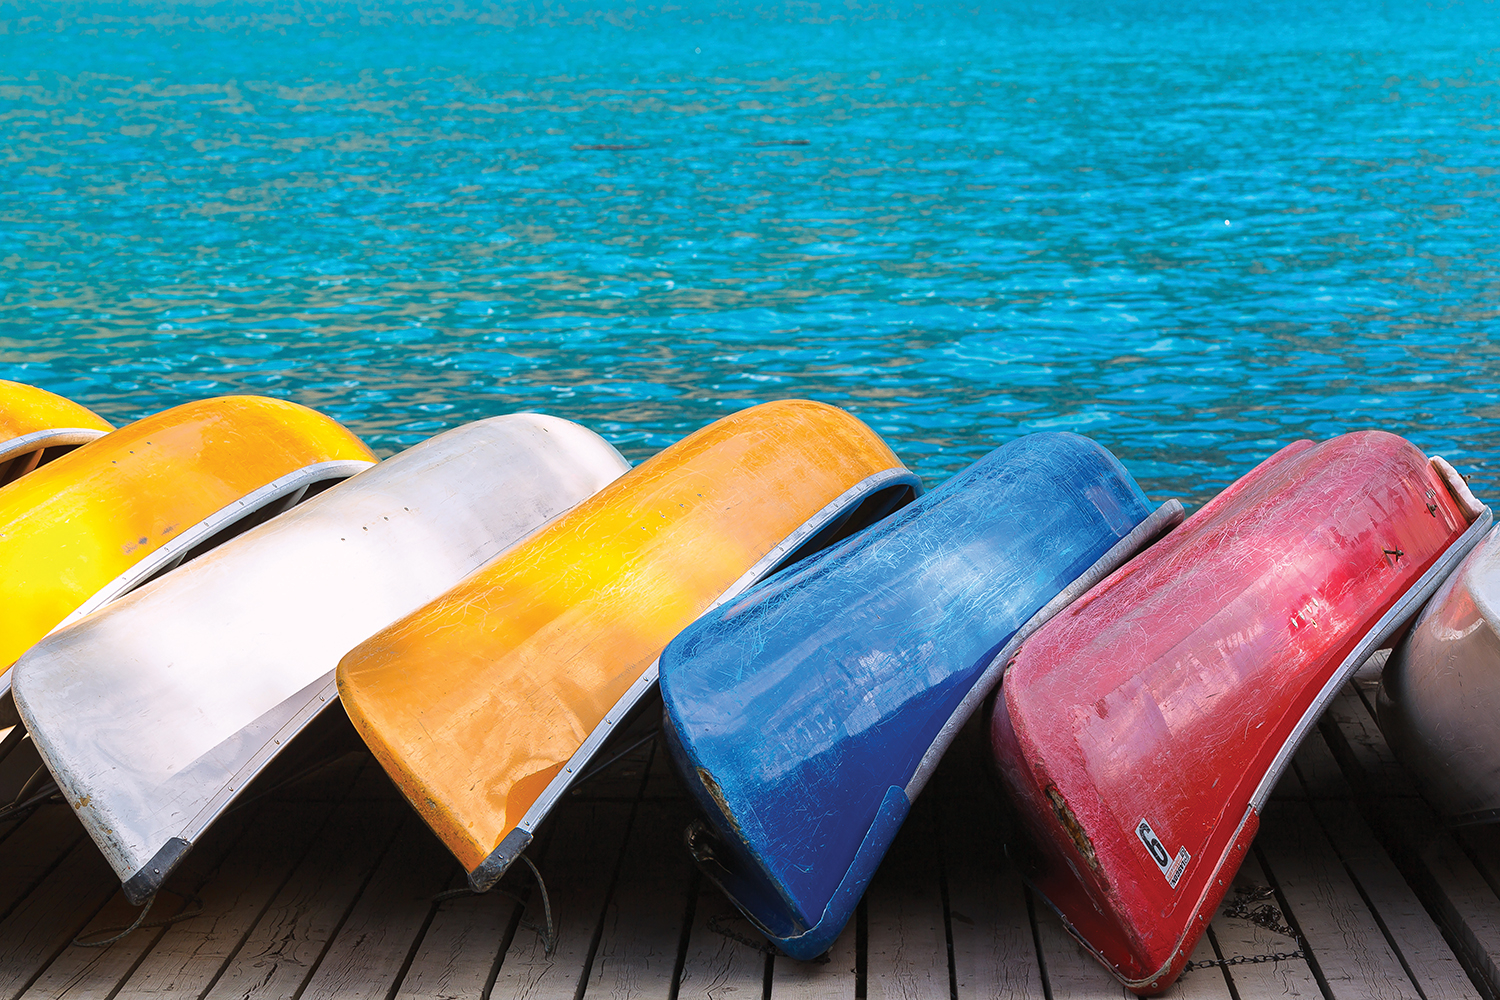 seven canoes including white, yellow, blue, and red, leaning on a dock by water